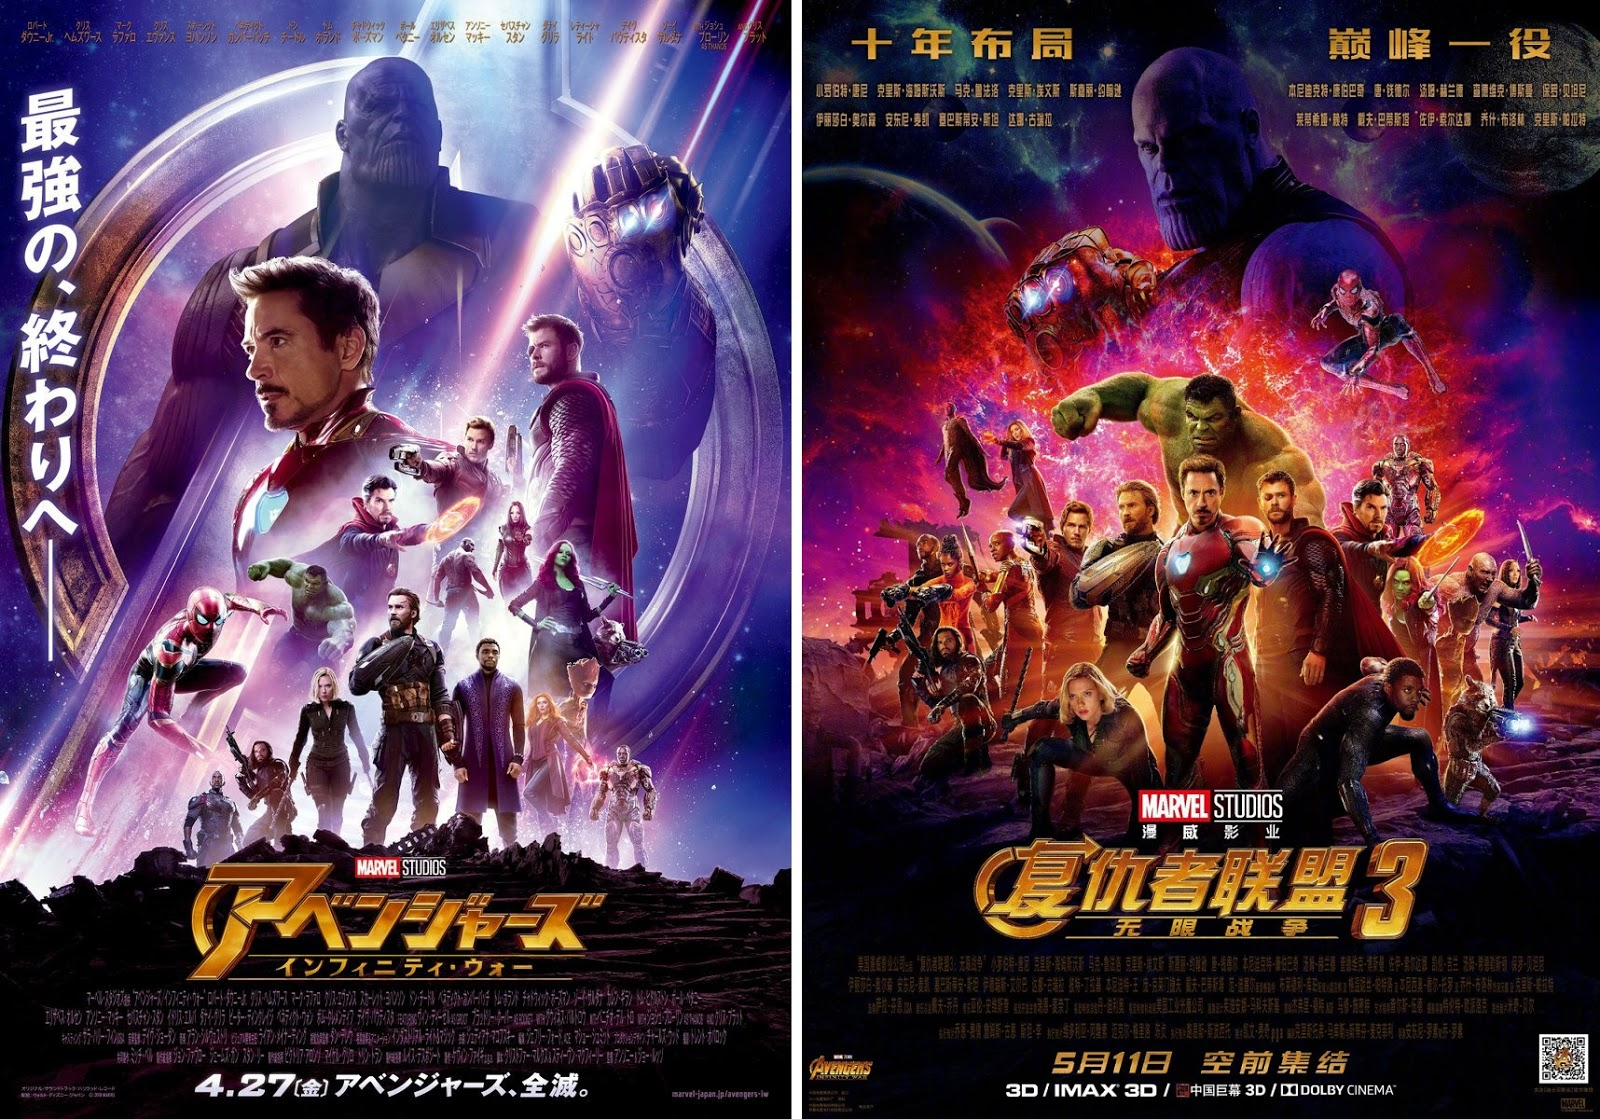 the blot says: avengers: infinity war international movie posters